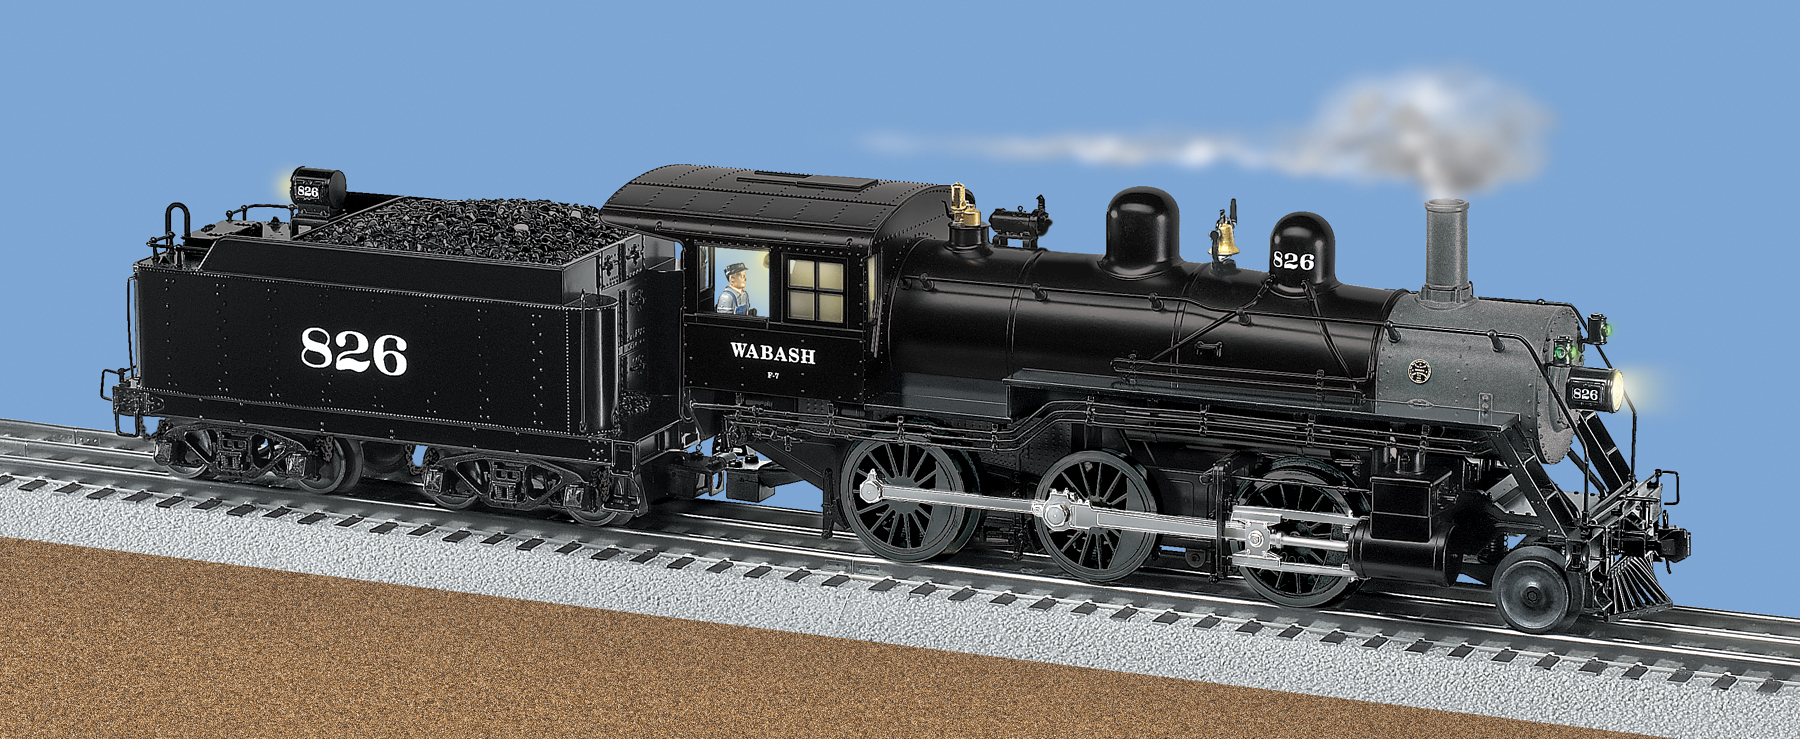 Wabash TMCC Scale 260 Mogul Steam Locomotive 826 – Lionel Legacy Wiring